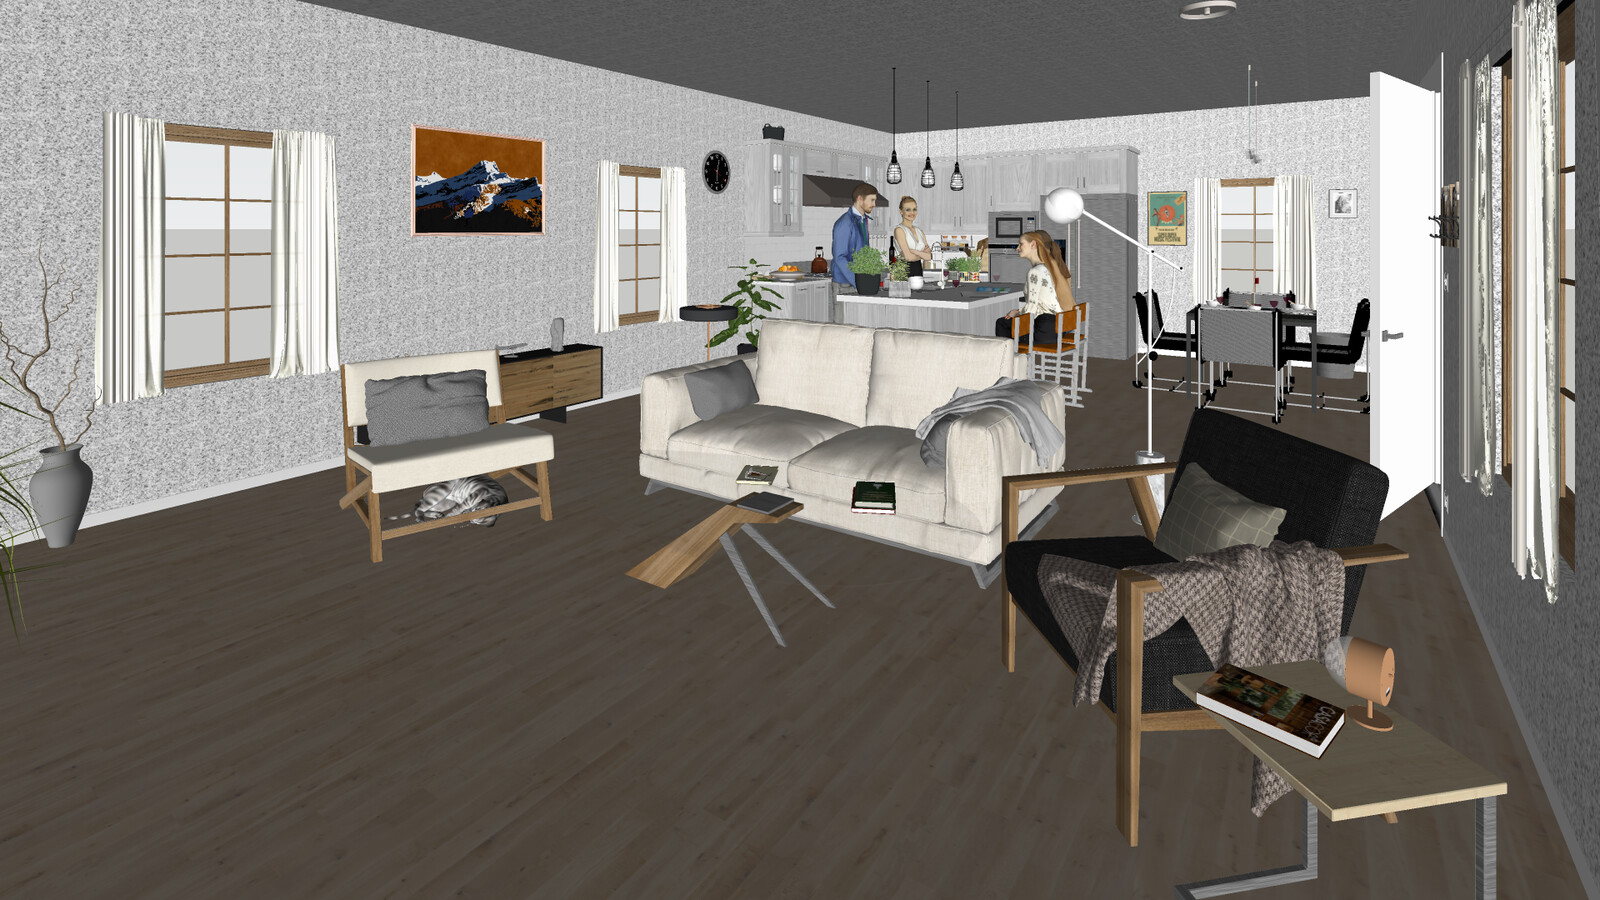 SketchUp 2019